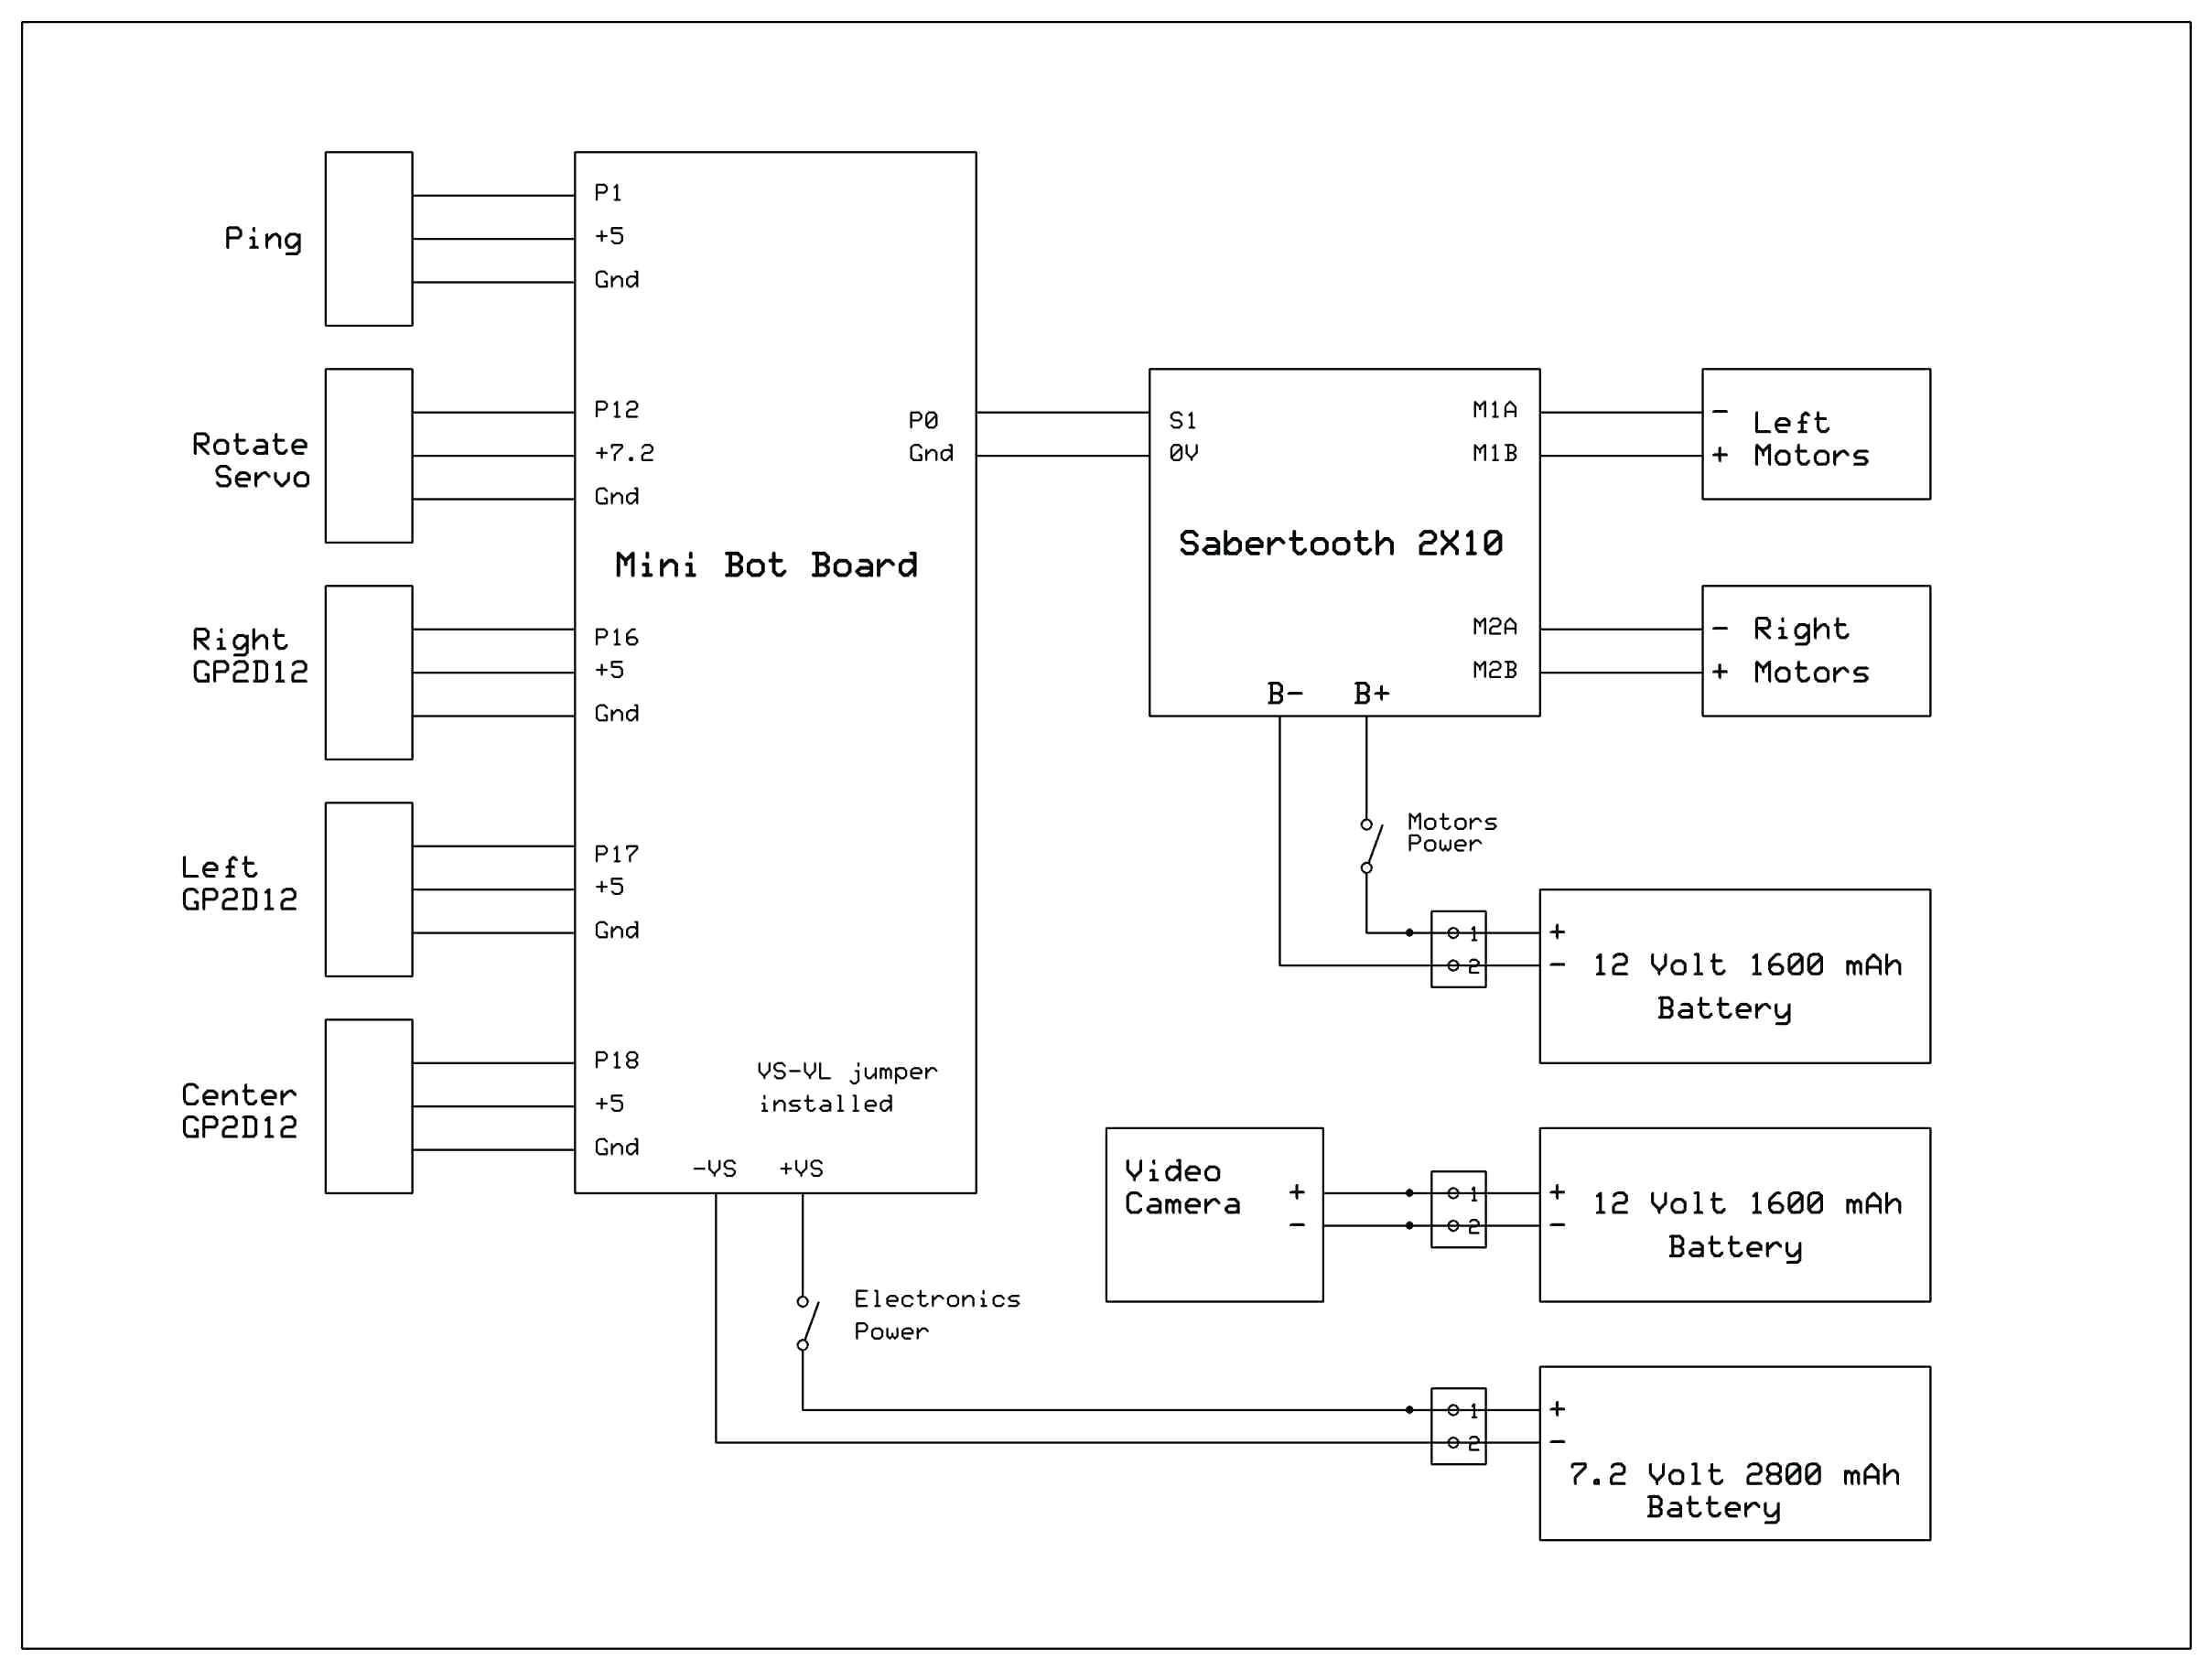 Hood Fire Suppression Wiring Diagram | Wiring Library - Ansul System Wiring Diagram